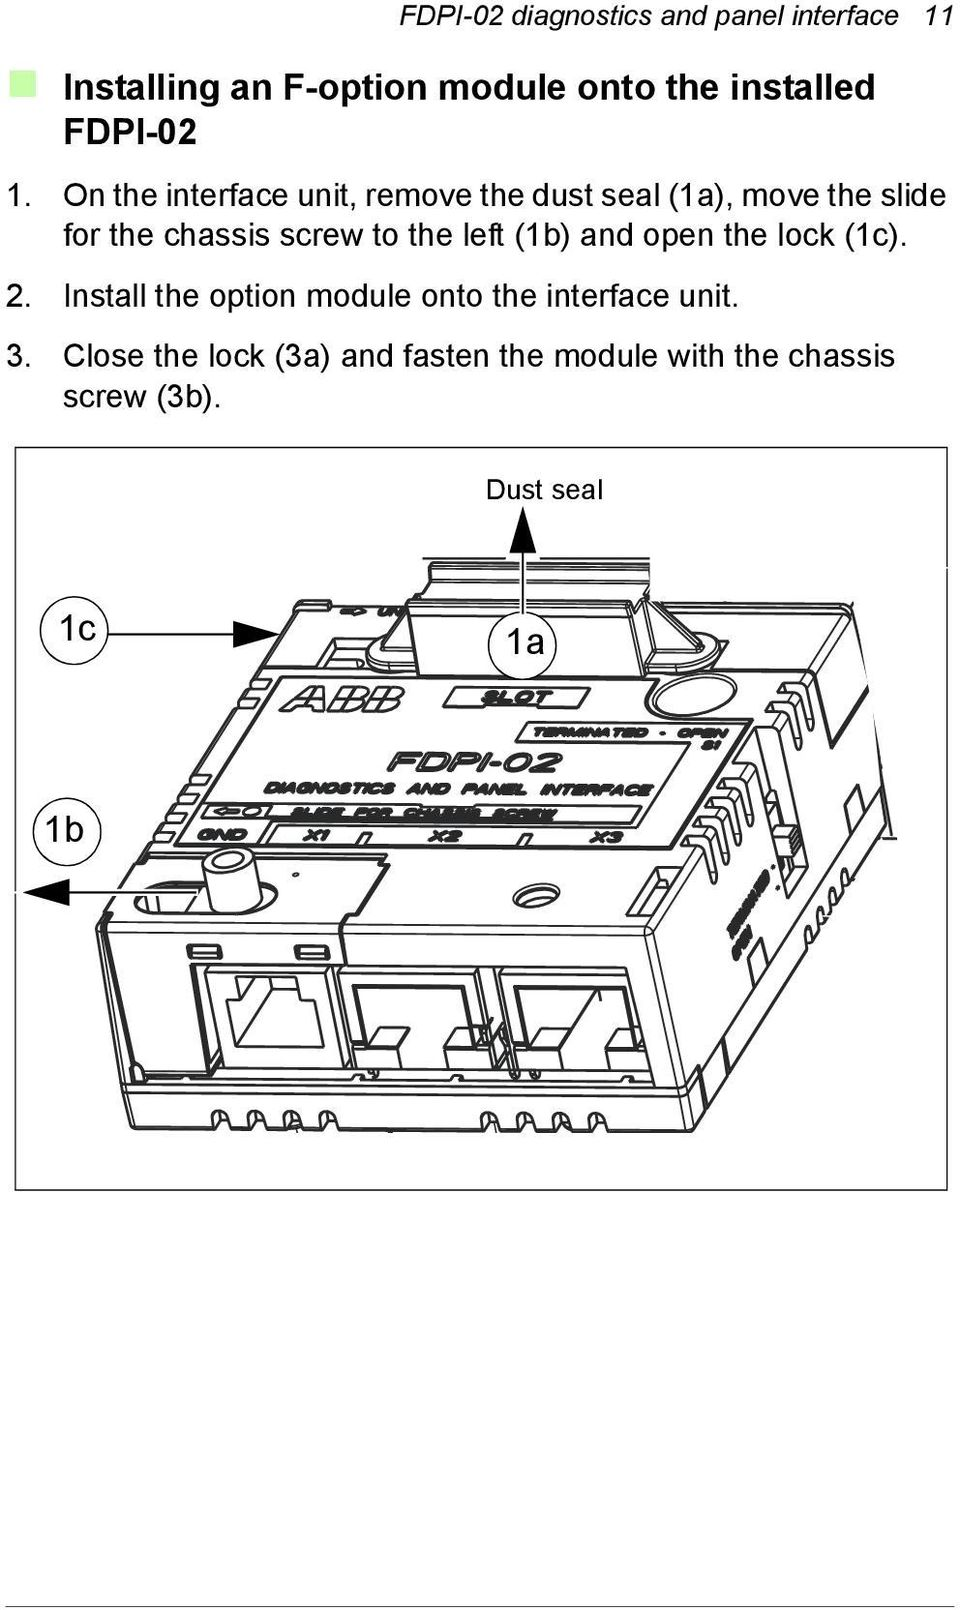 On the interface unit, remove the dust seal (1a), move the slide for the chassis screw to the